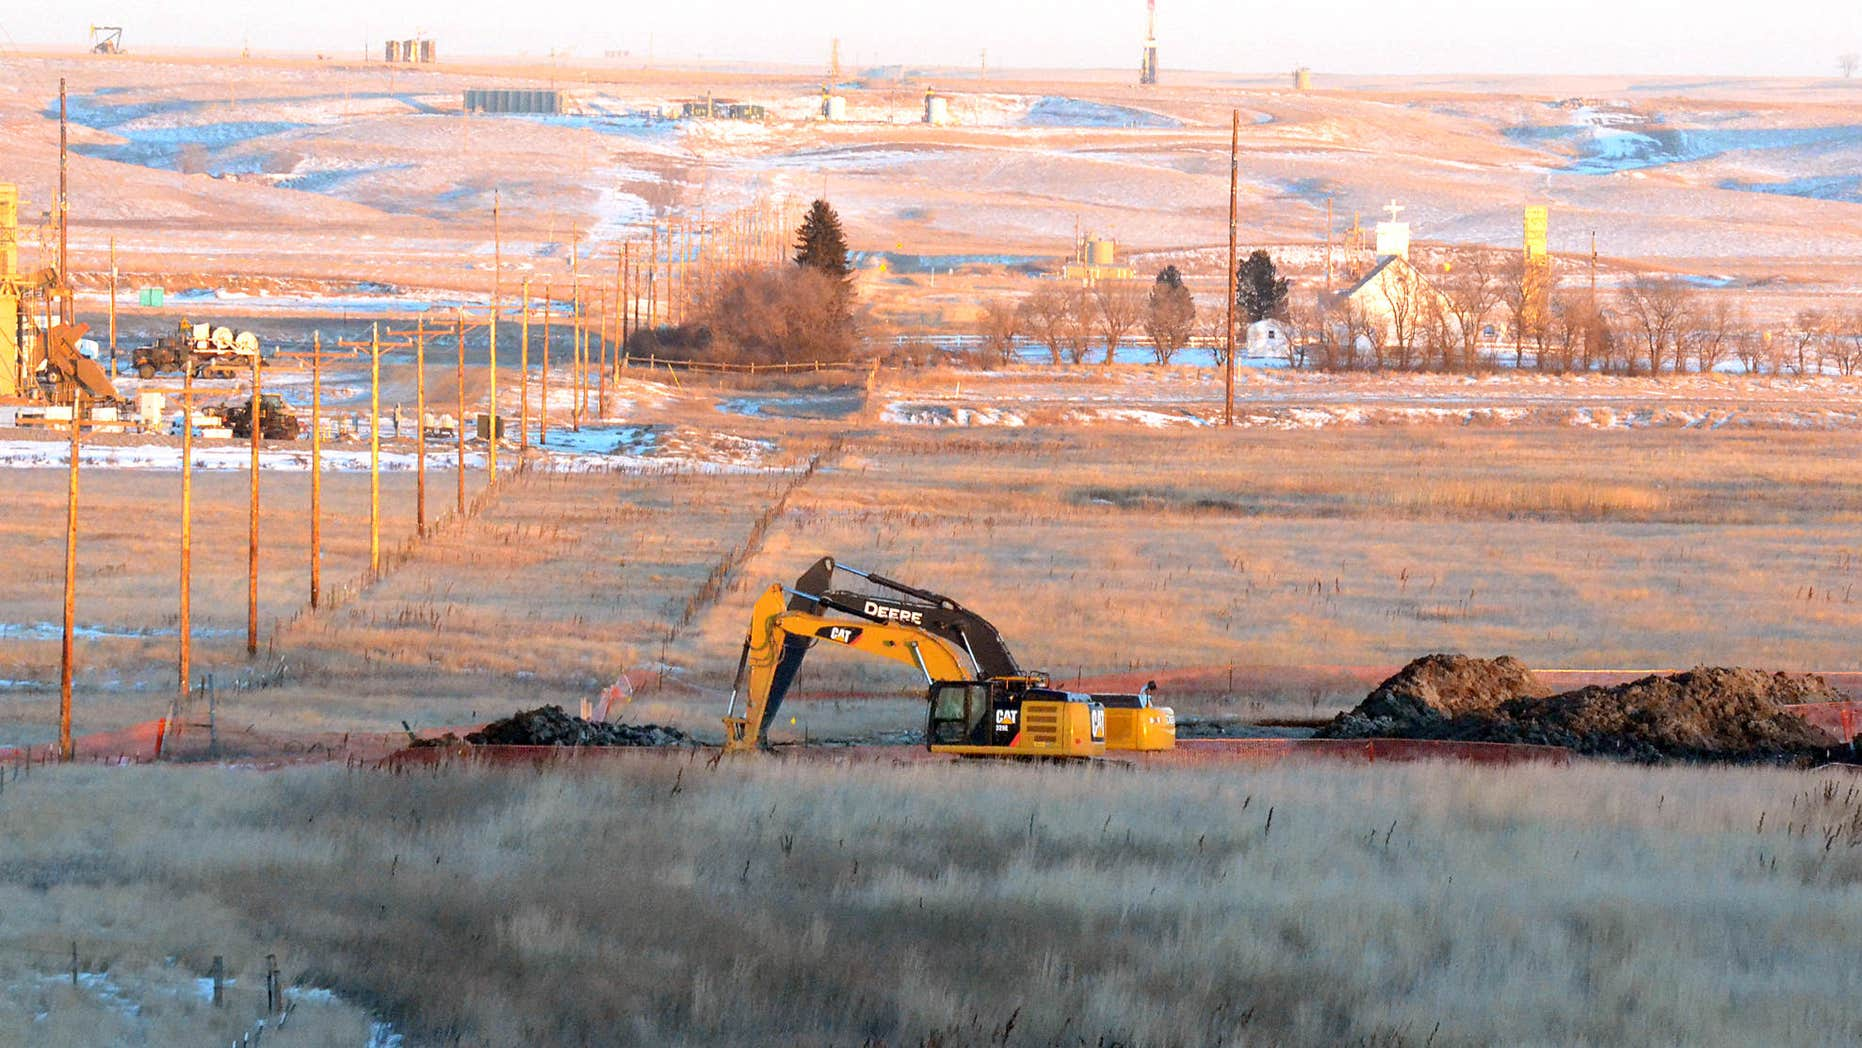 Jan. 12, 2015: Crews dig up land at a saltwater spill site near Blacktail Creek outside Williston, N.D.